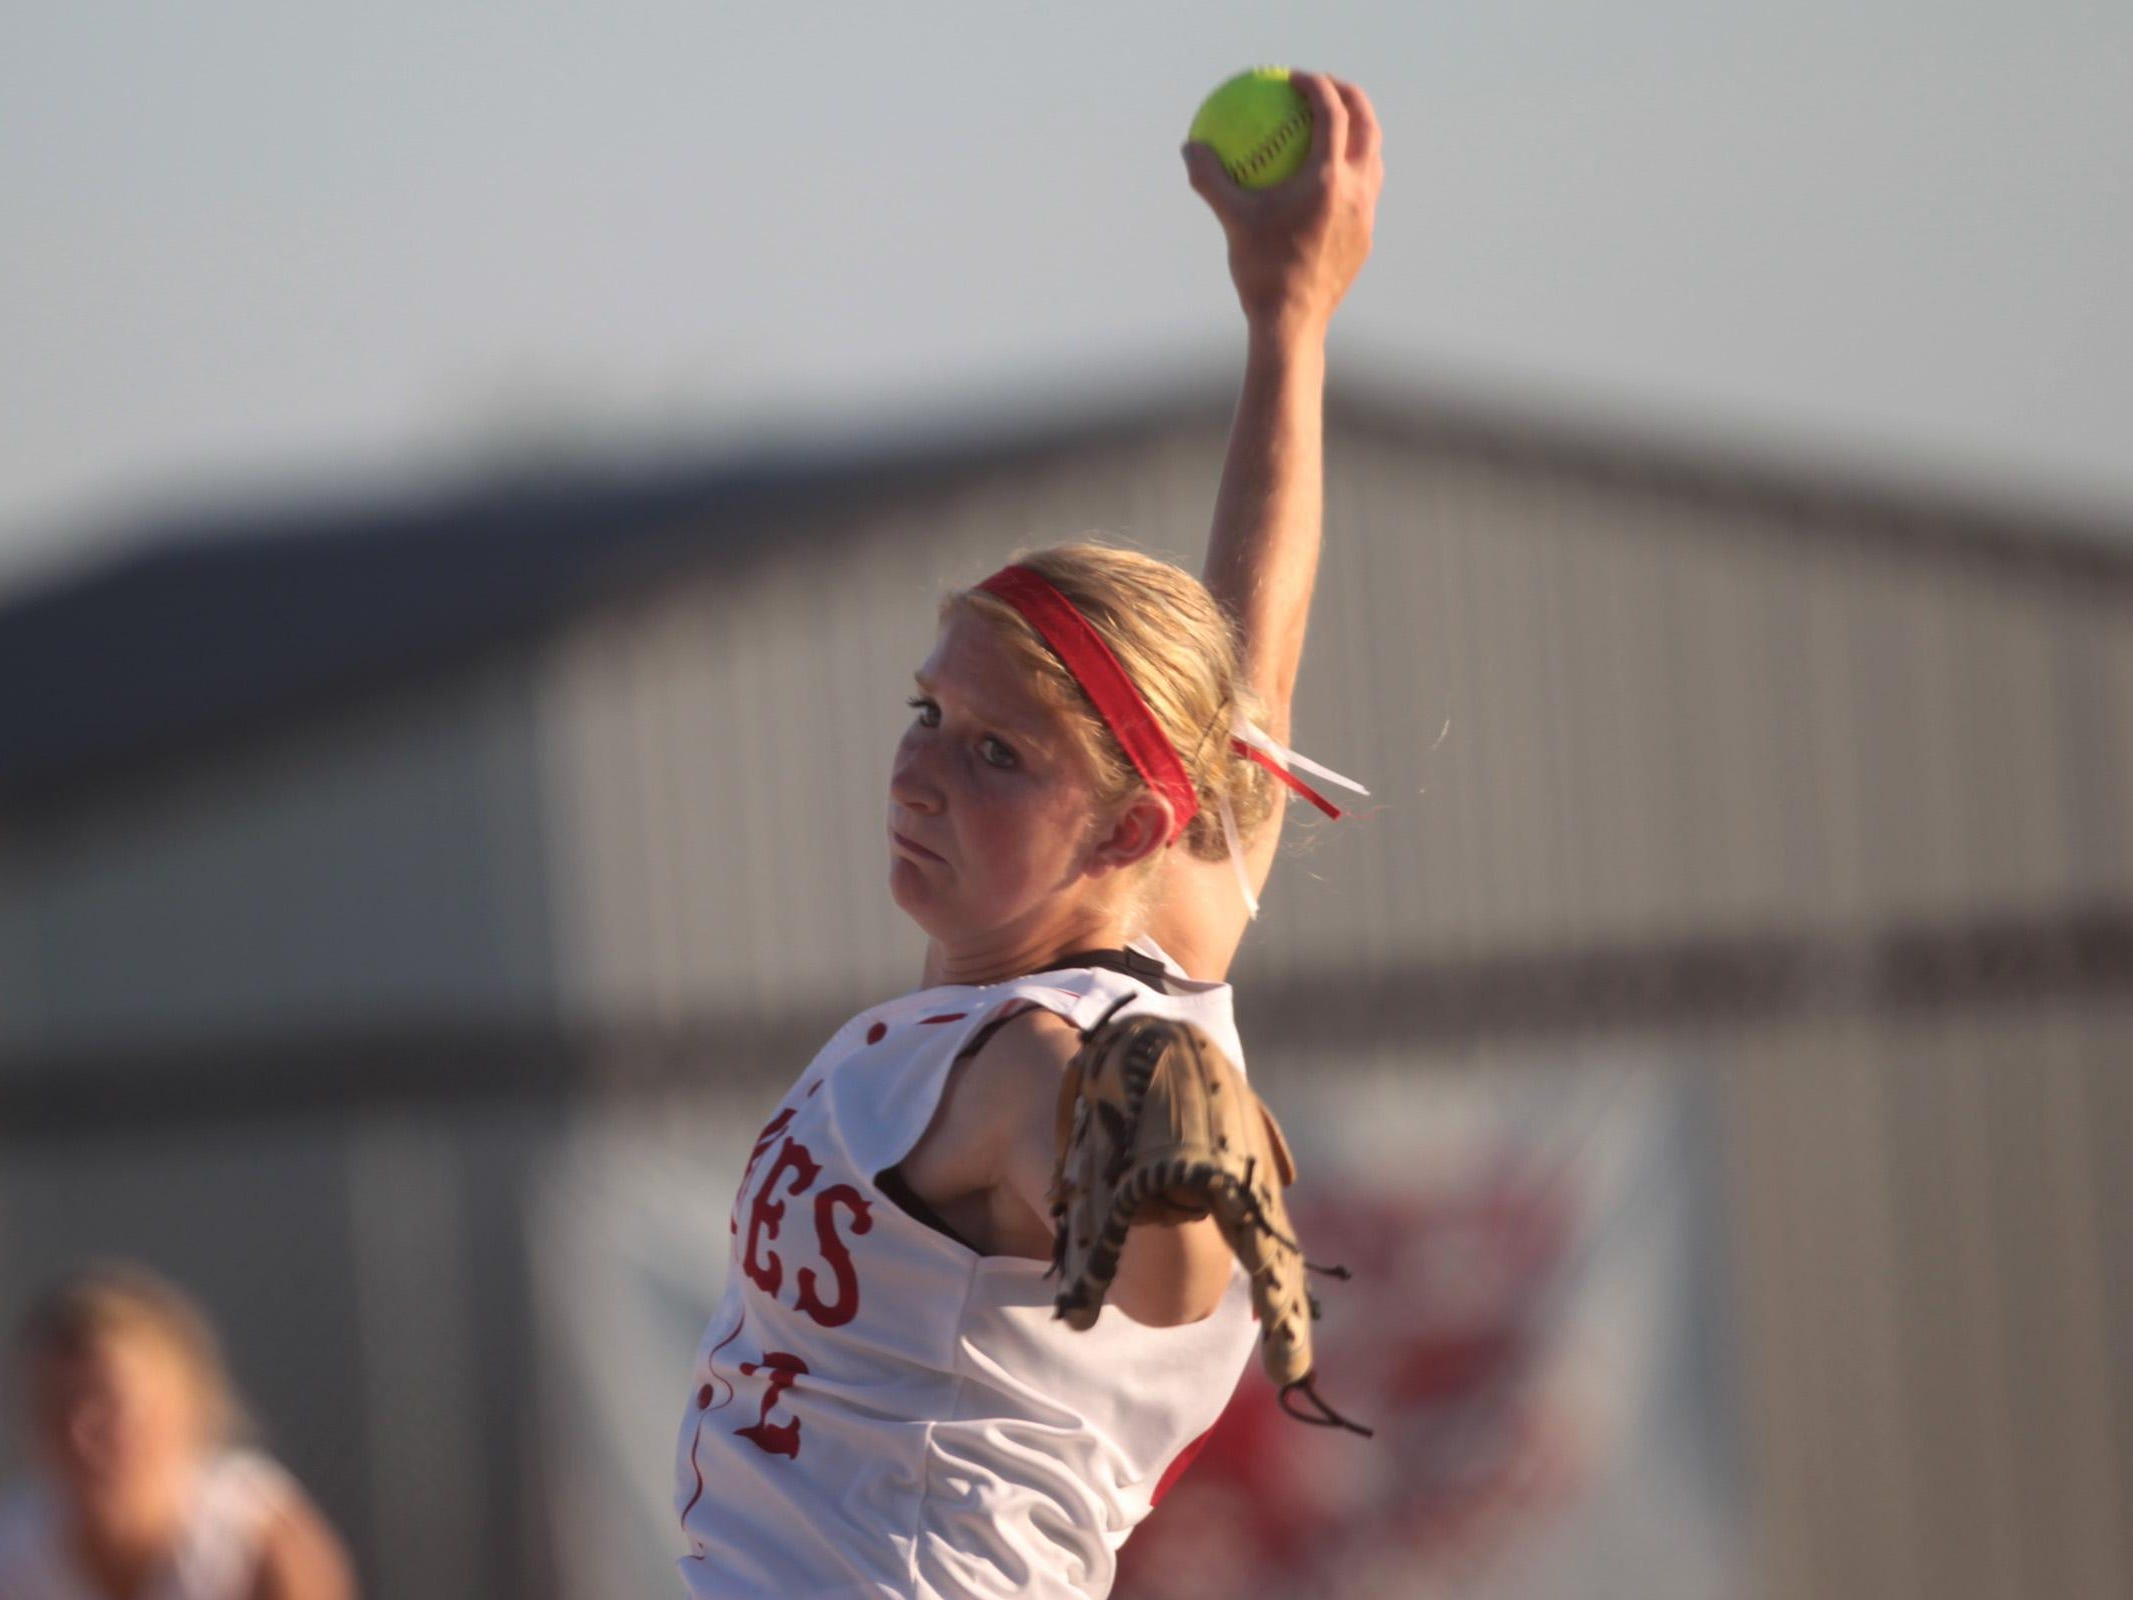 Highland's Katie Springer throws a pitch during the Huskies' game against West Branch in Riverside on Friday, July 12, 2013. David Scrivner / Iowa City Press-Citizen